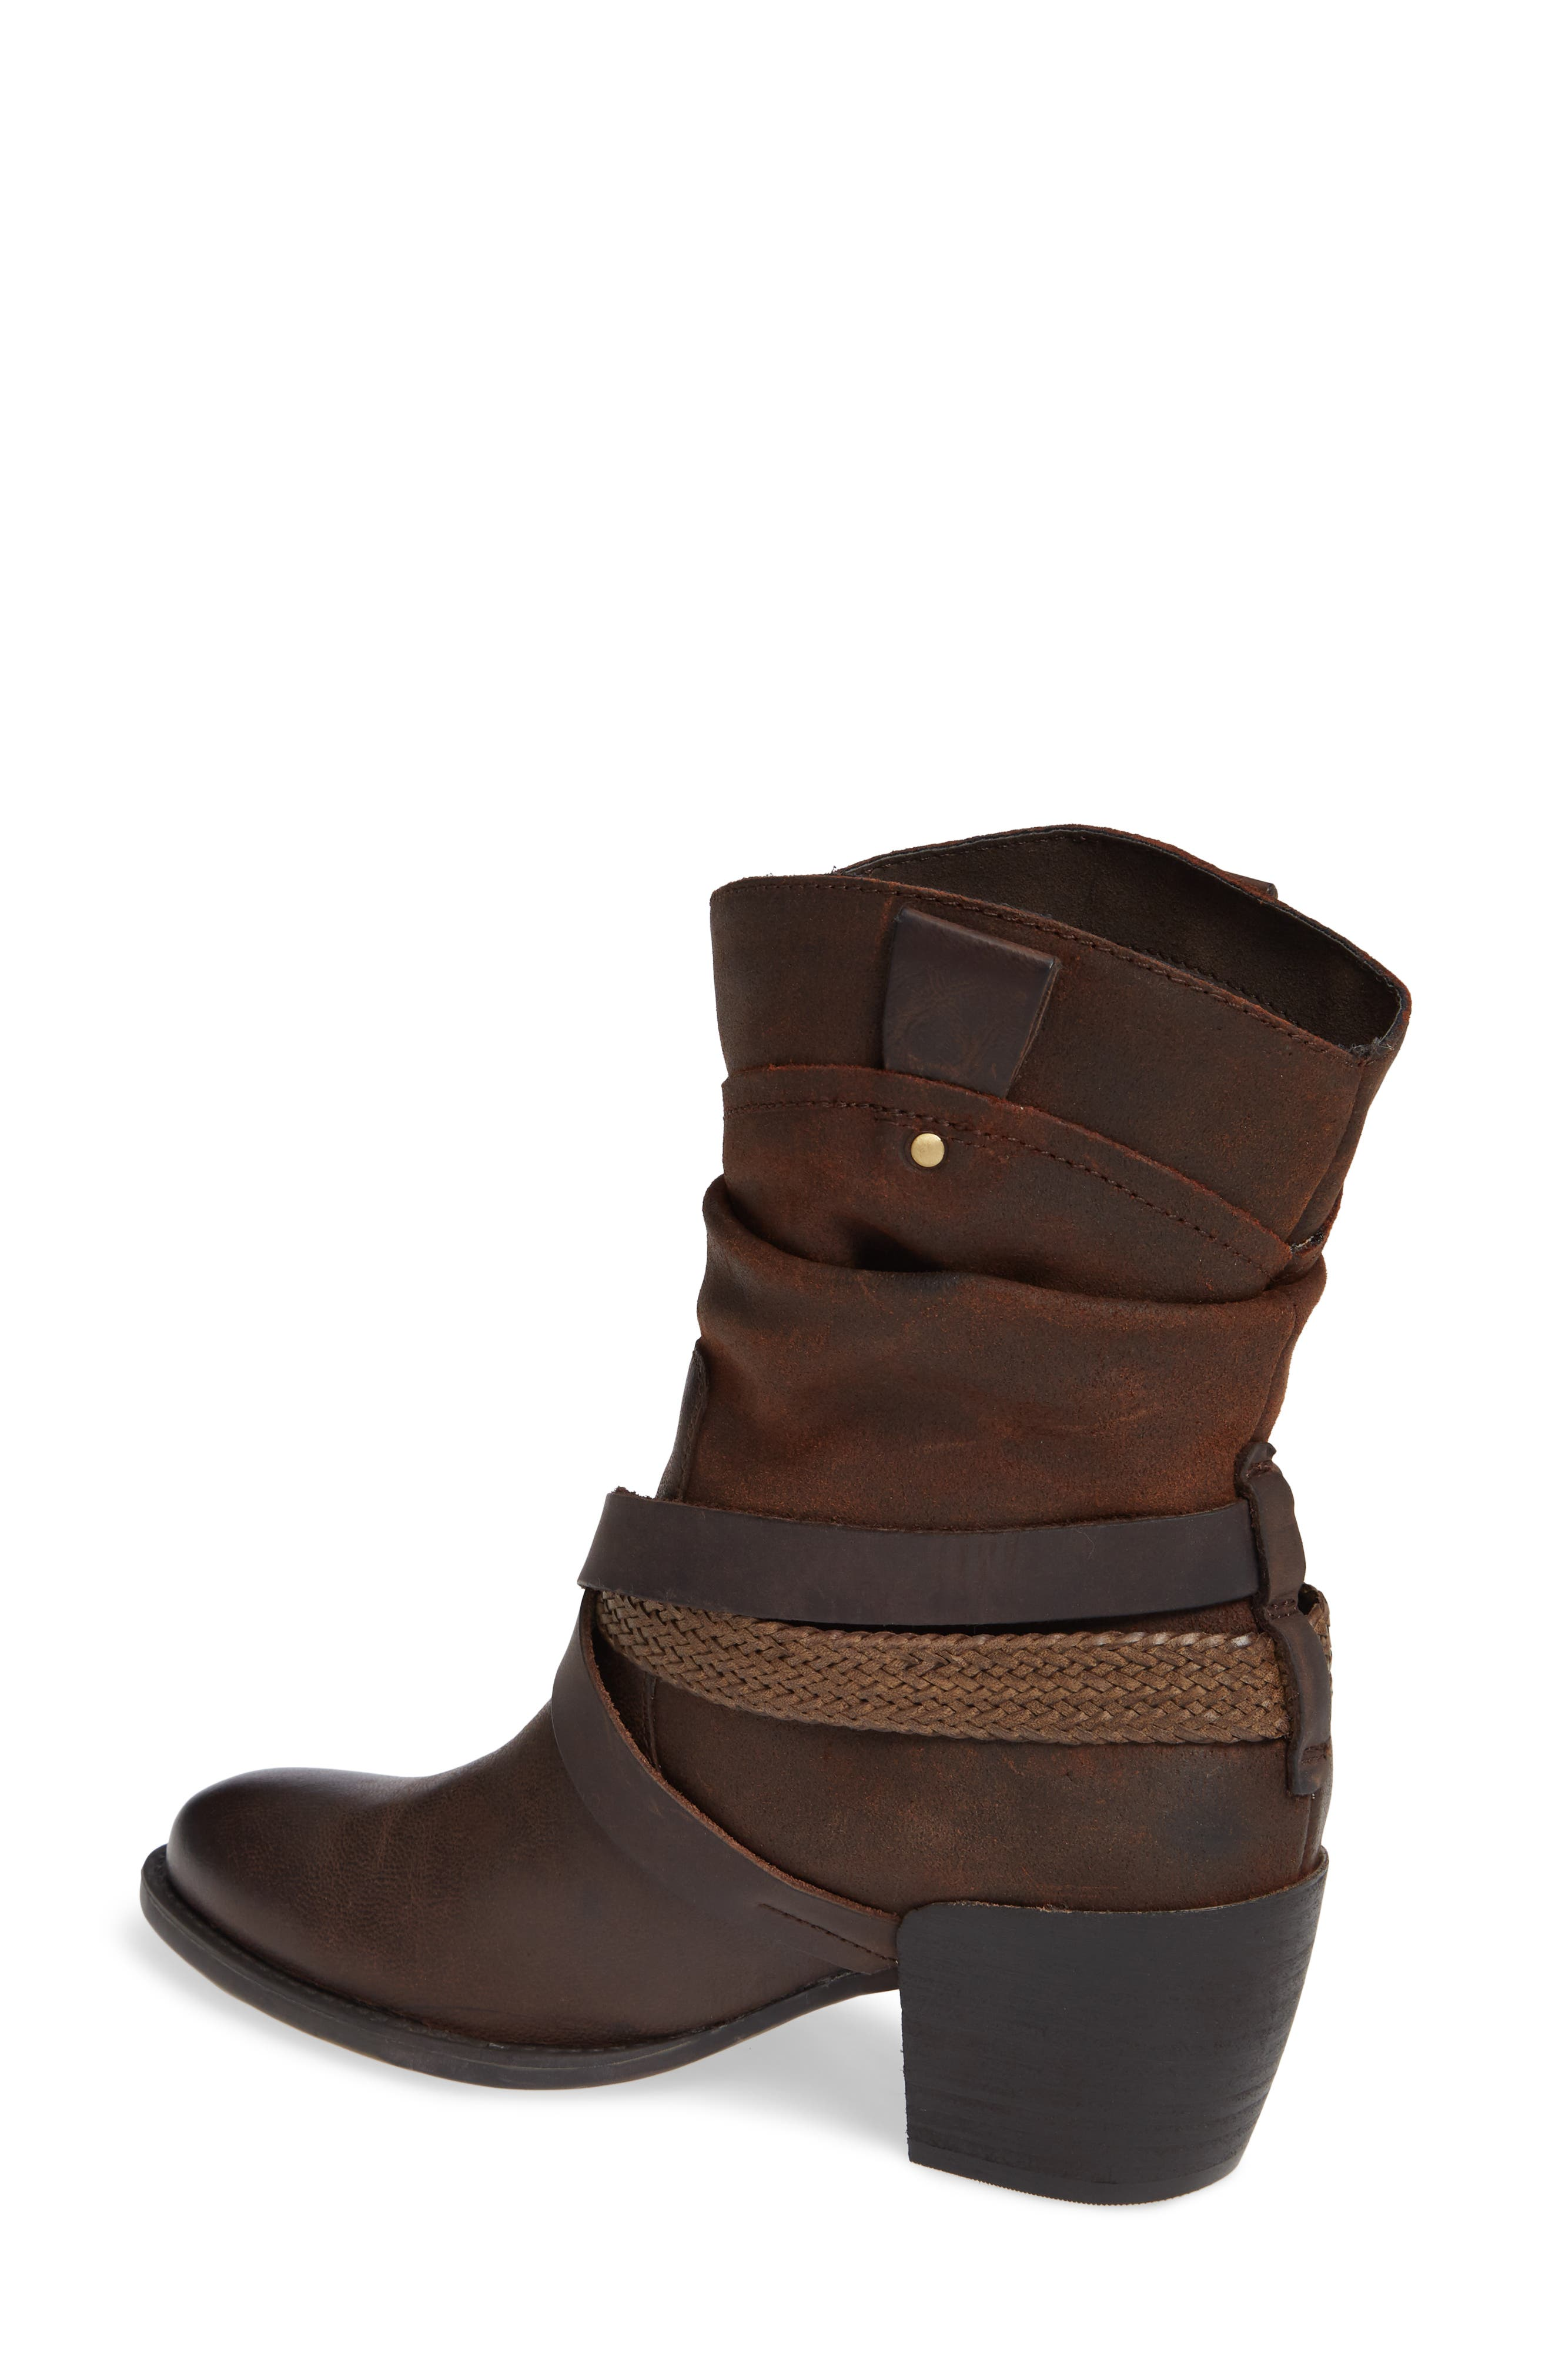 Hay Ride Bootie,                             Alternate thumbnail 2, color,                             COFFEE BEAN LEATHER